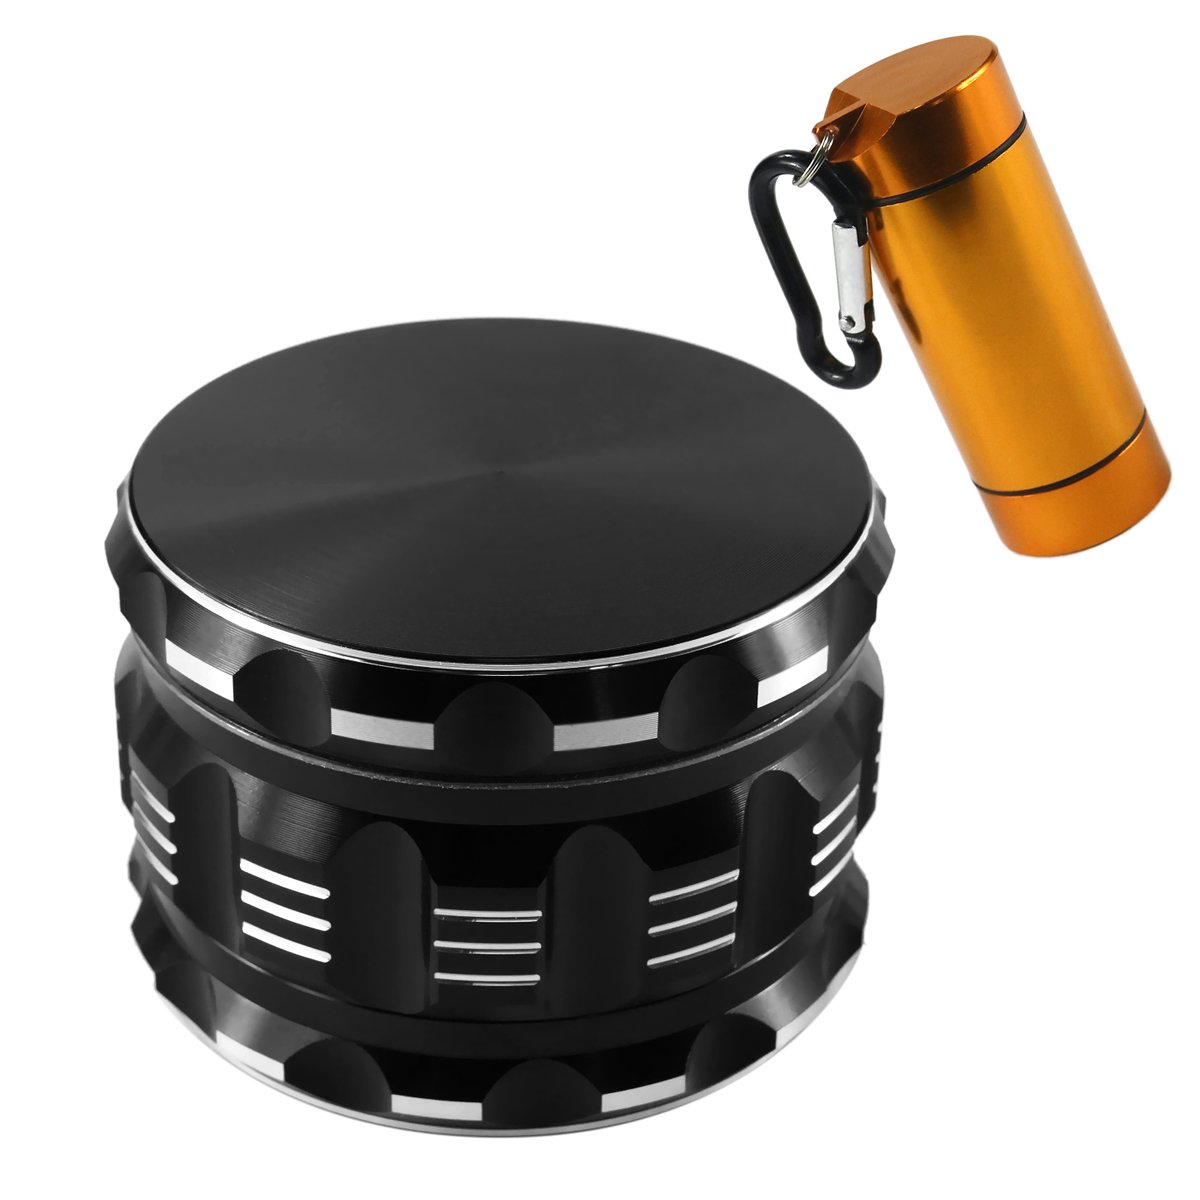 Weed Grinder with Storage Case As Bonus 2018 Updated Version Aluminum with Keef Catcher 4 Pieces 2.5'' Formax420